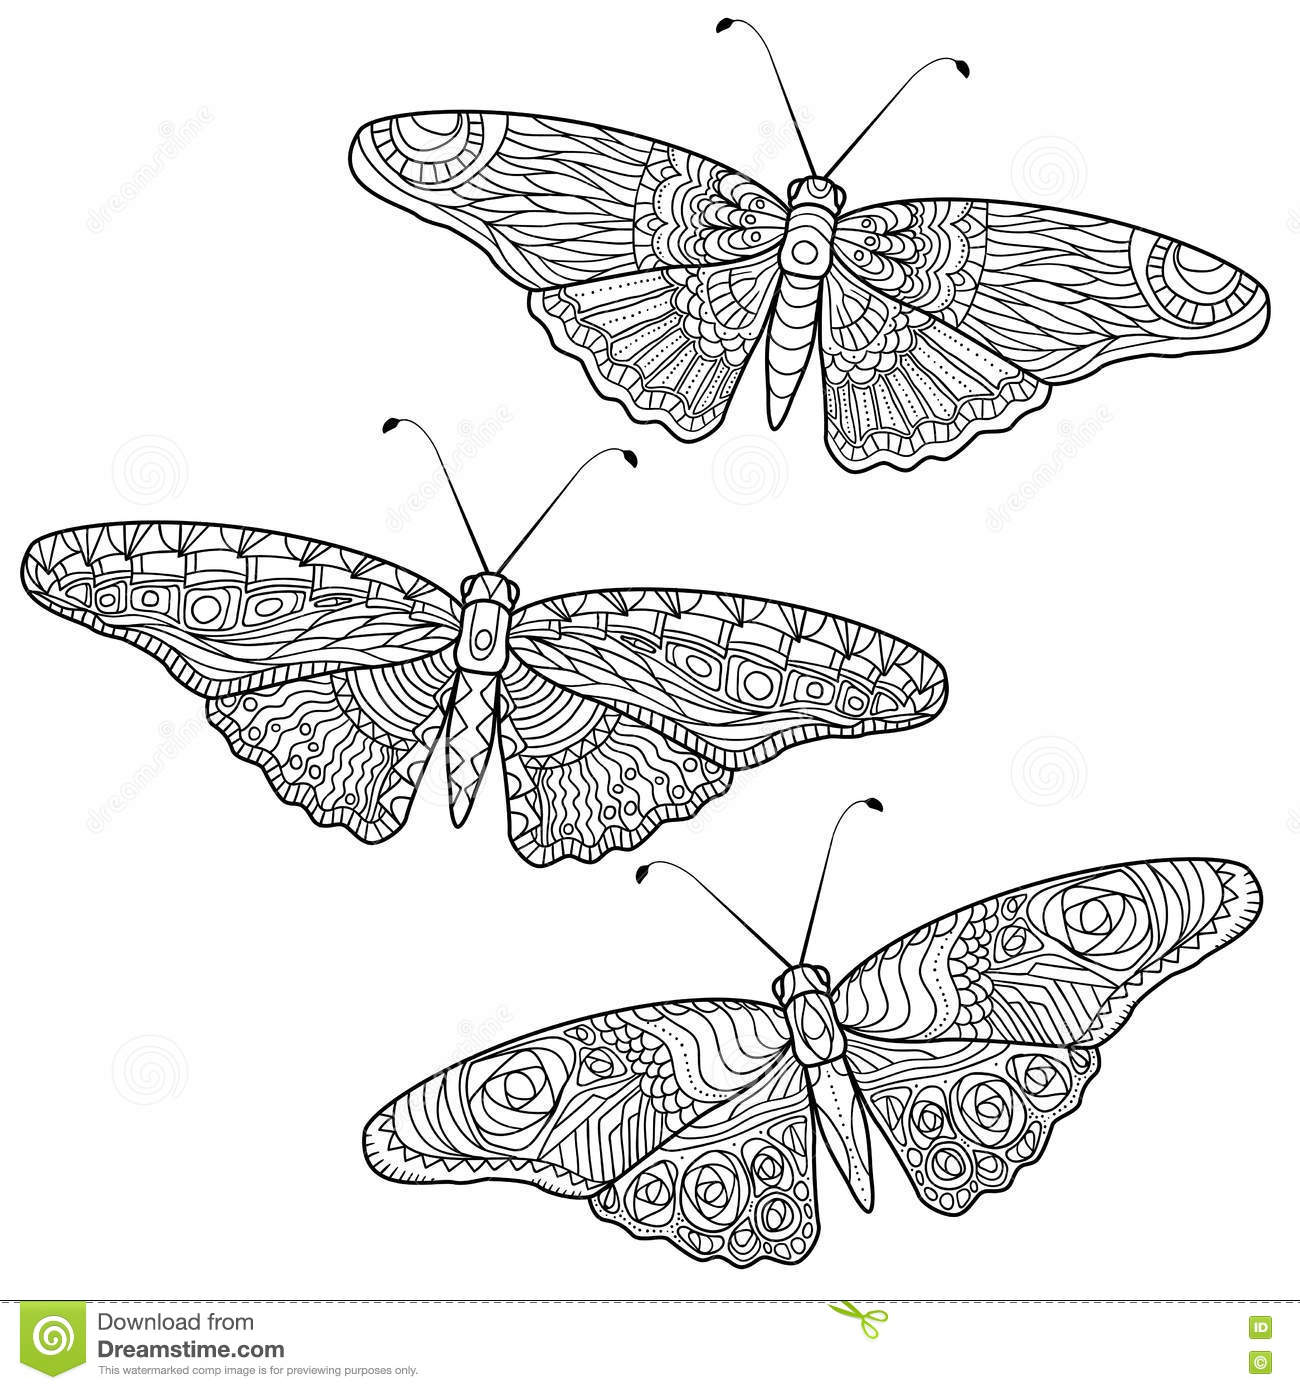 Butterfly Anti Stress Coloring Pages In Doodle Style